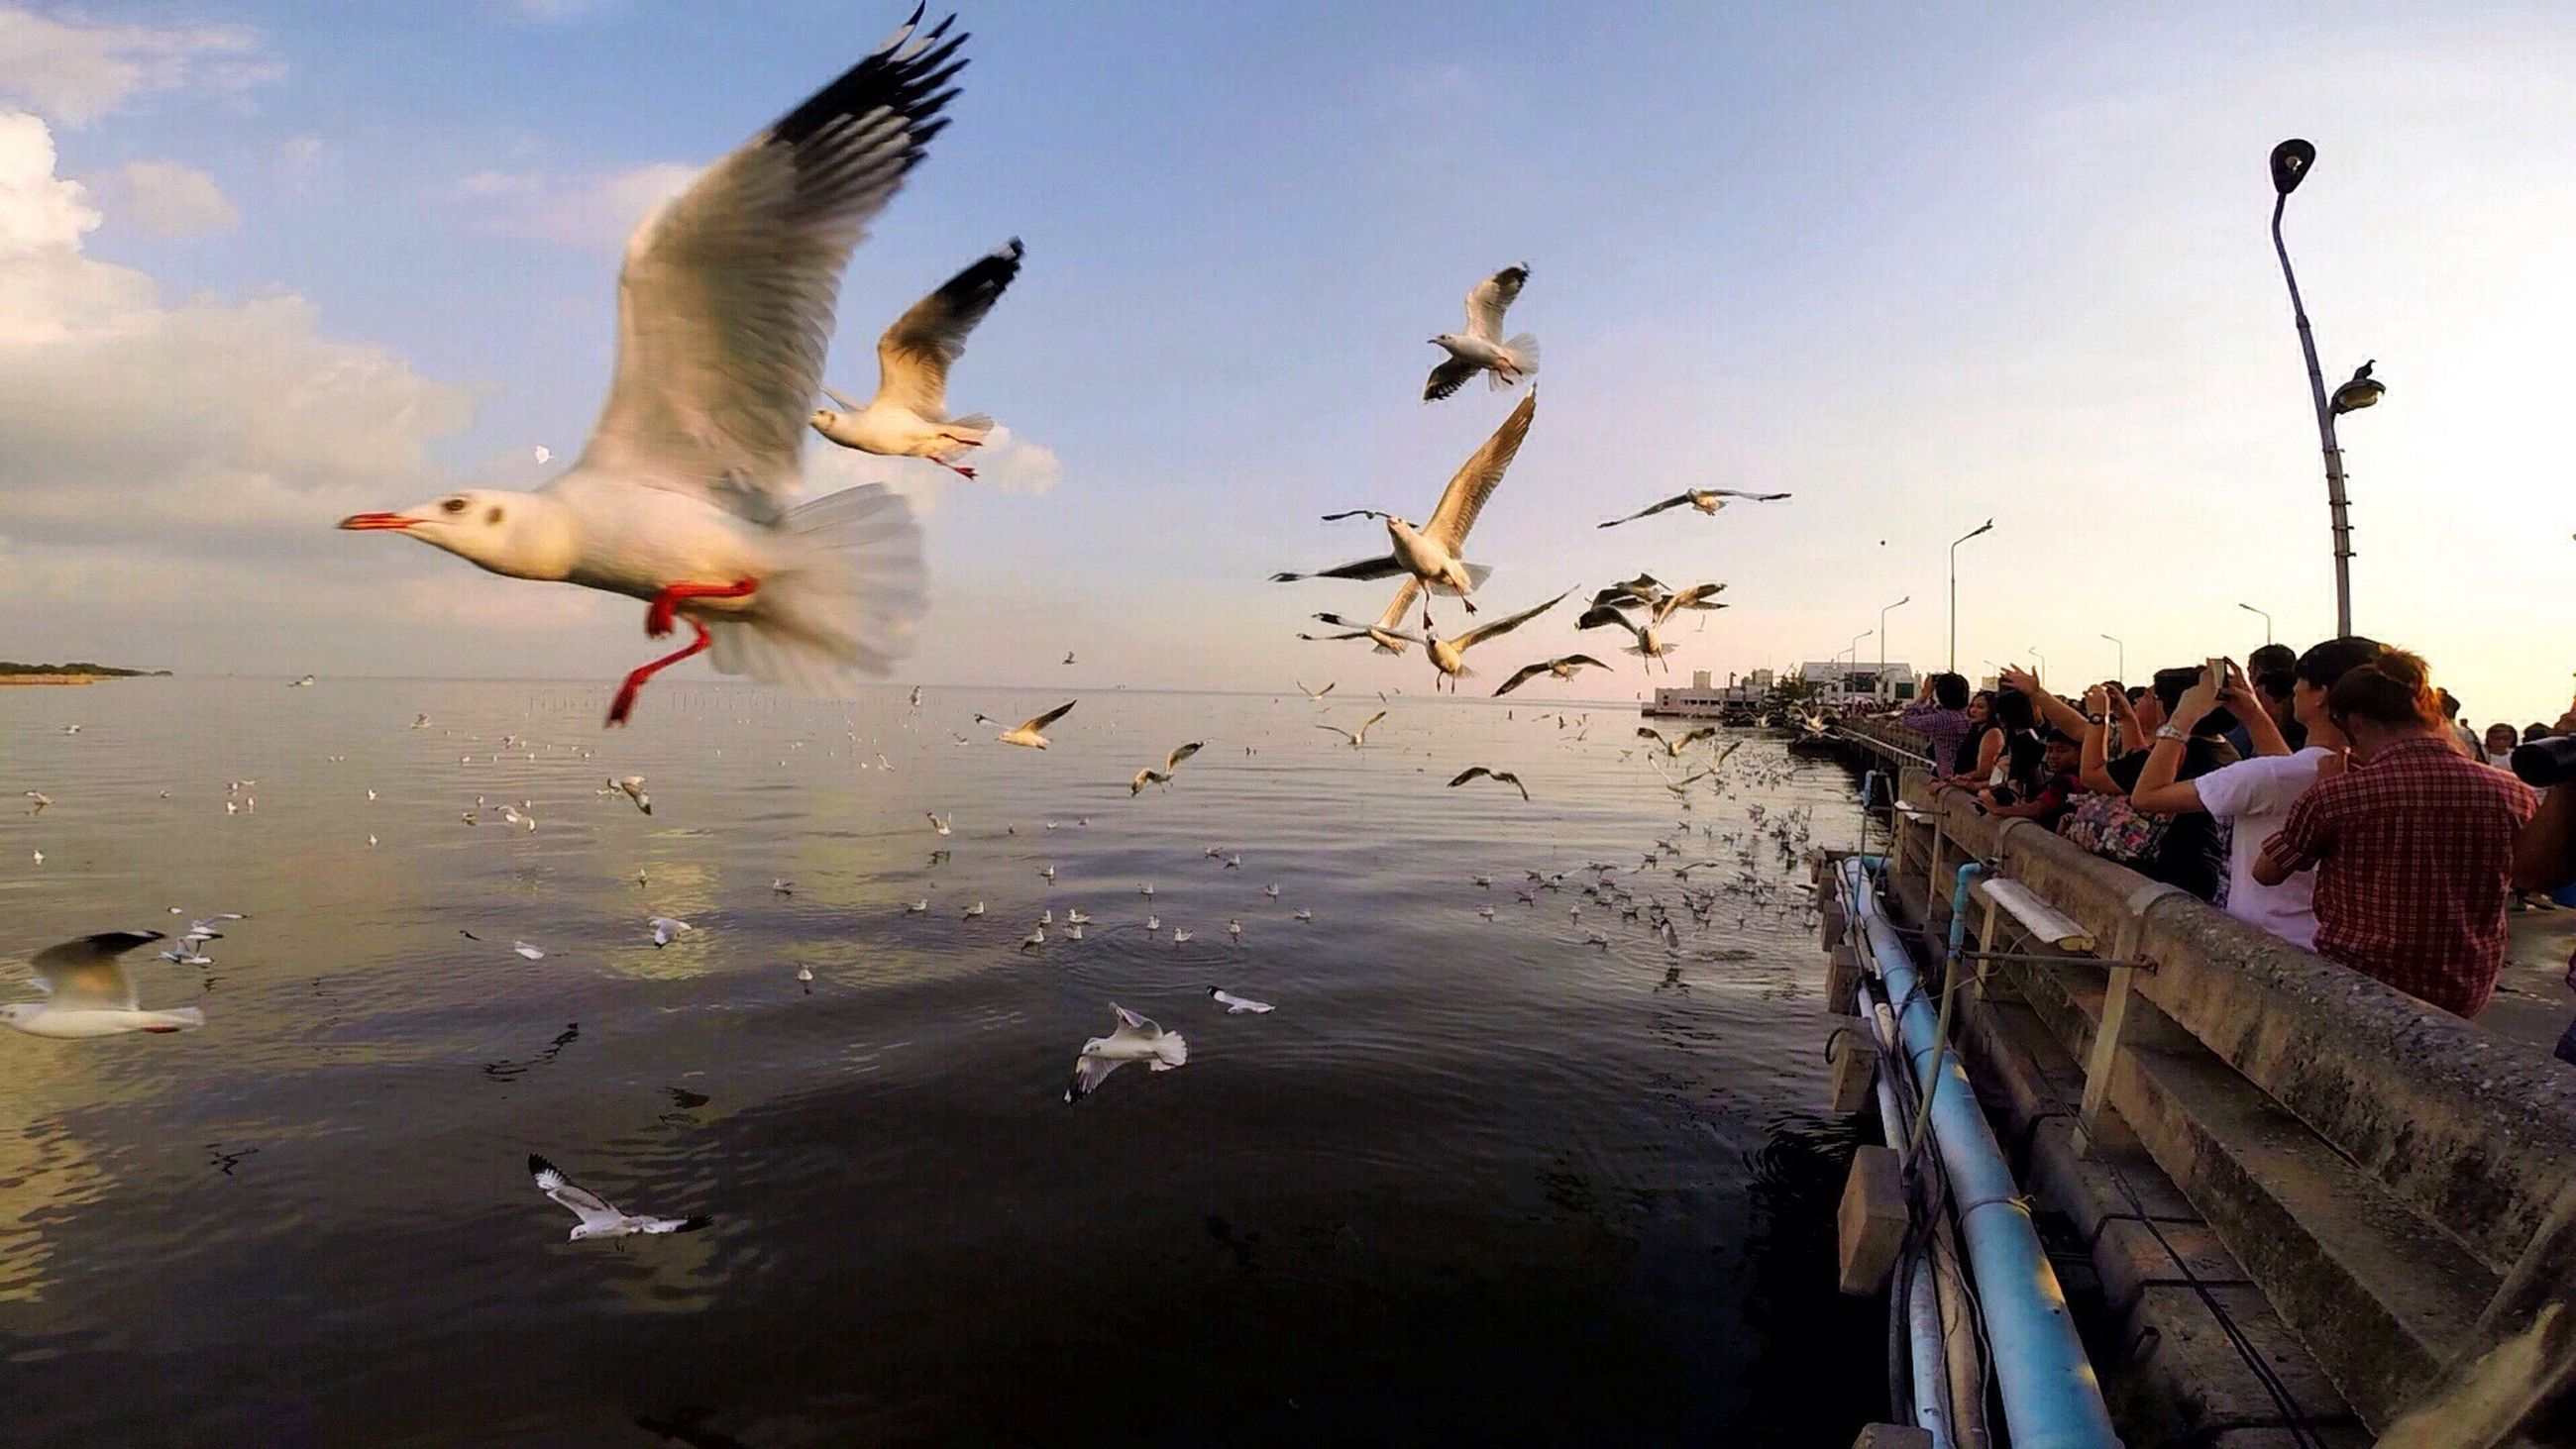 bird, water, animal themes, animals in the wild, flying, sky, sea, seagull, wildlife, one animal, beach, spread wings, nature, built structure, shore, day, cloud - sky, outdoors, building exterior